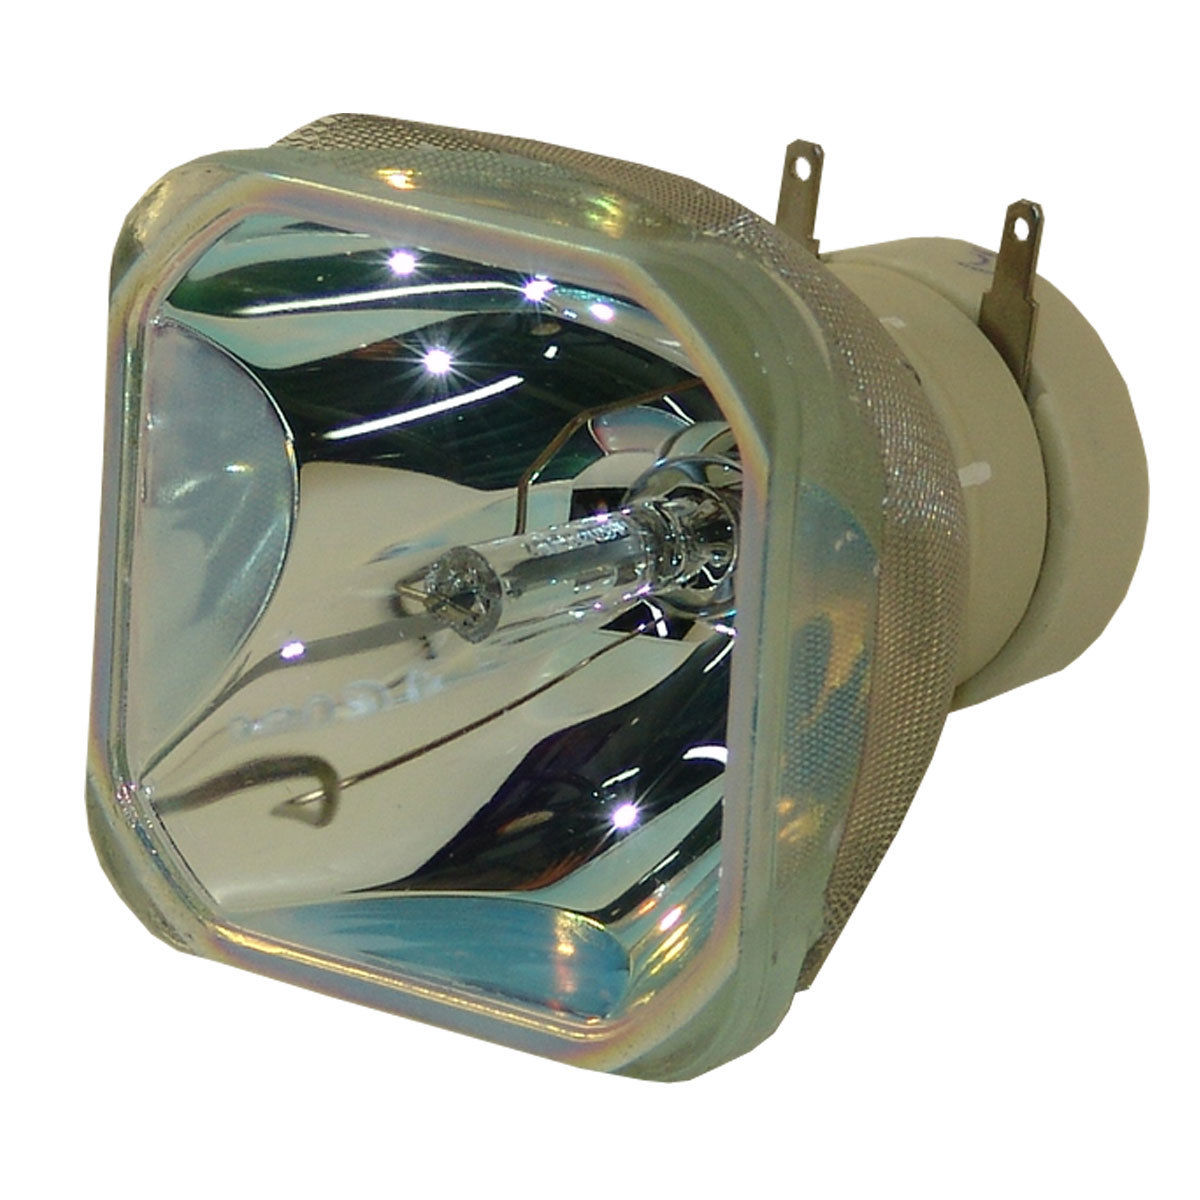 Compatible Bare Bulb DT01381 DT-01381 for HITACHI BZ-1 CP-A220N CP-A220NM CP-A221N Projector Lamp Bulb without housing compatible projector lamp bulb dt01151 with housing for hitachi cp rx79 ed x26 cp rx82 cp rx93